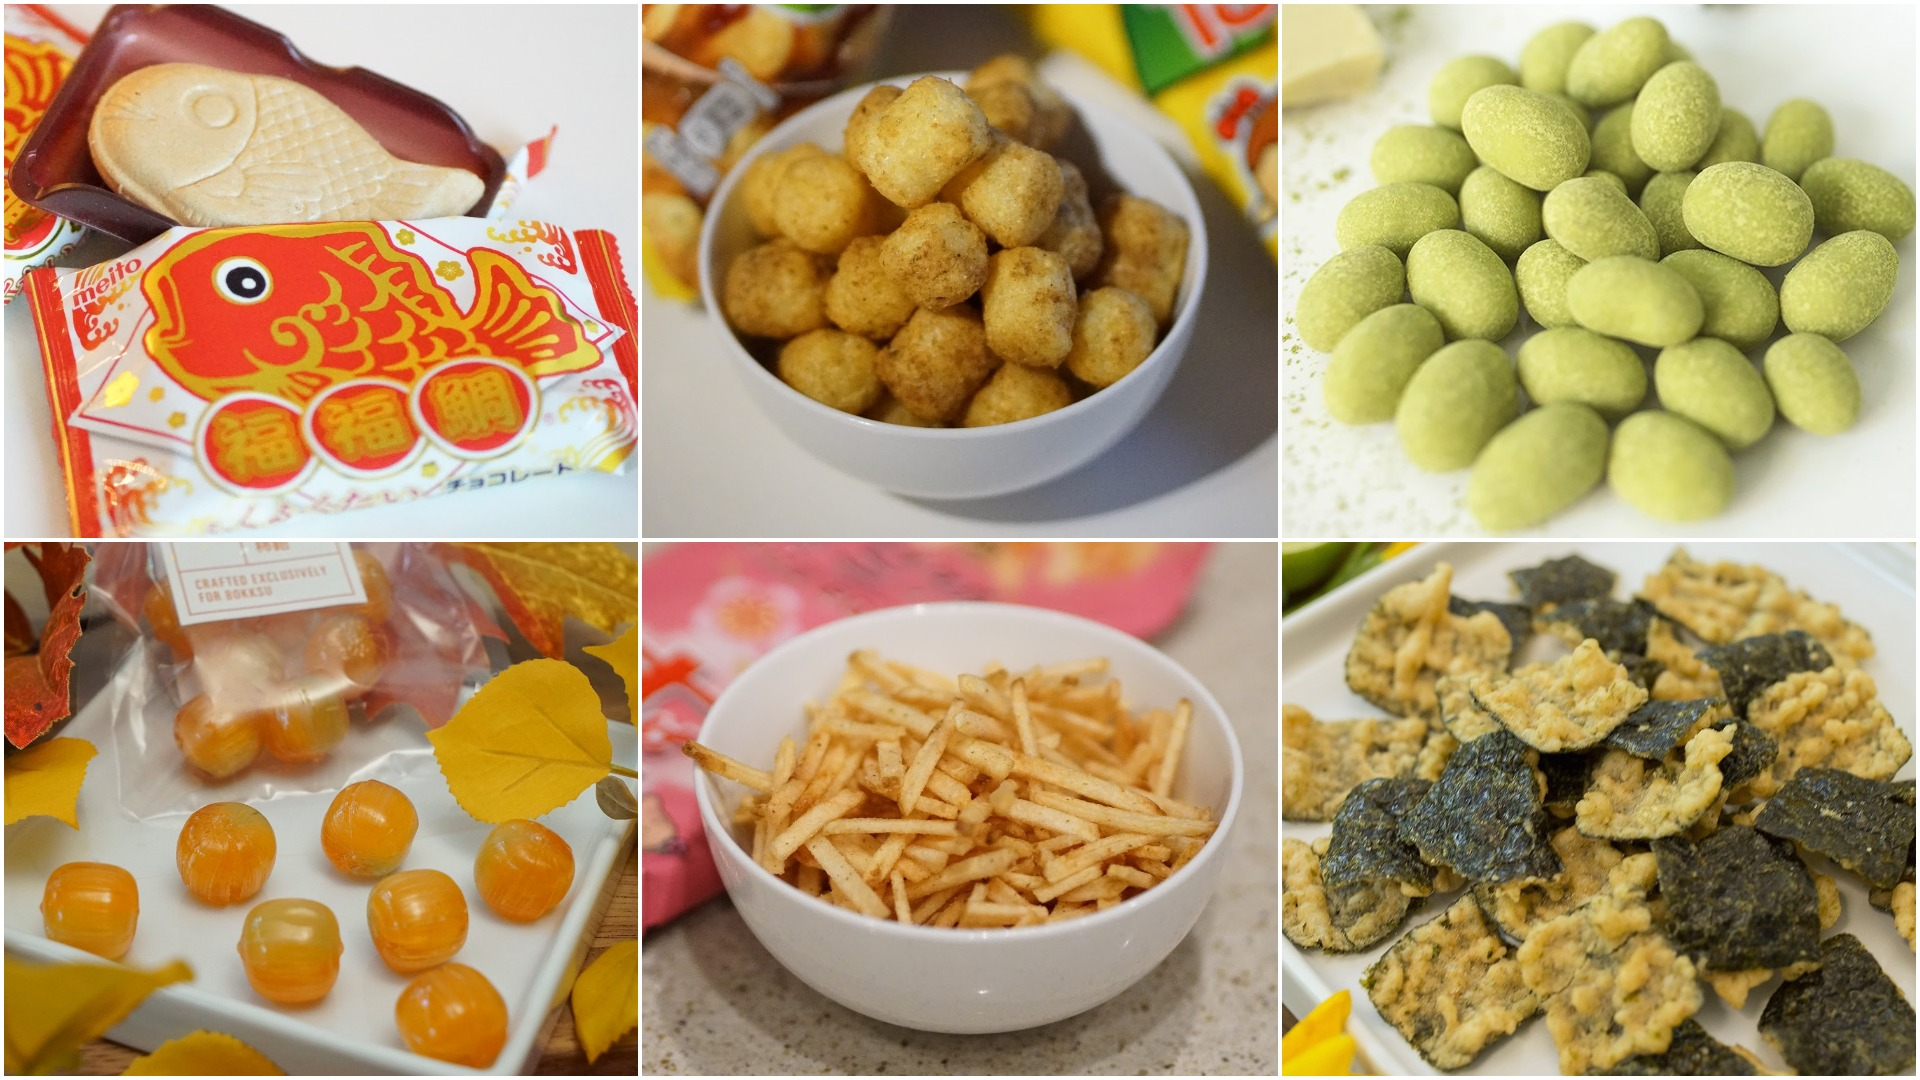 10 Delicious Snacks You Can ONLY Find in Japan